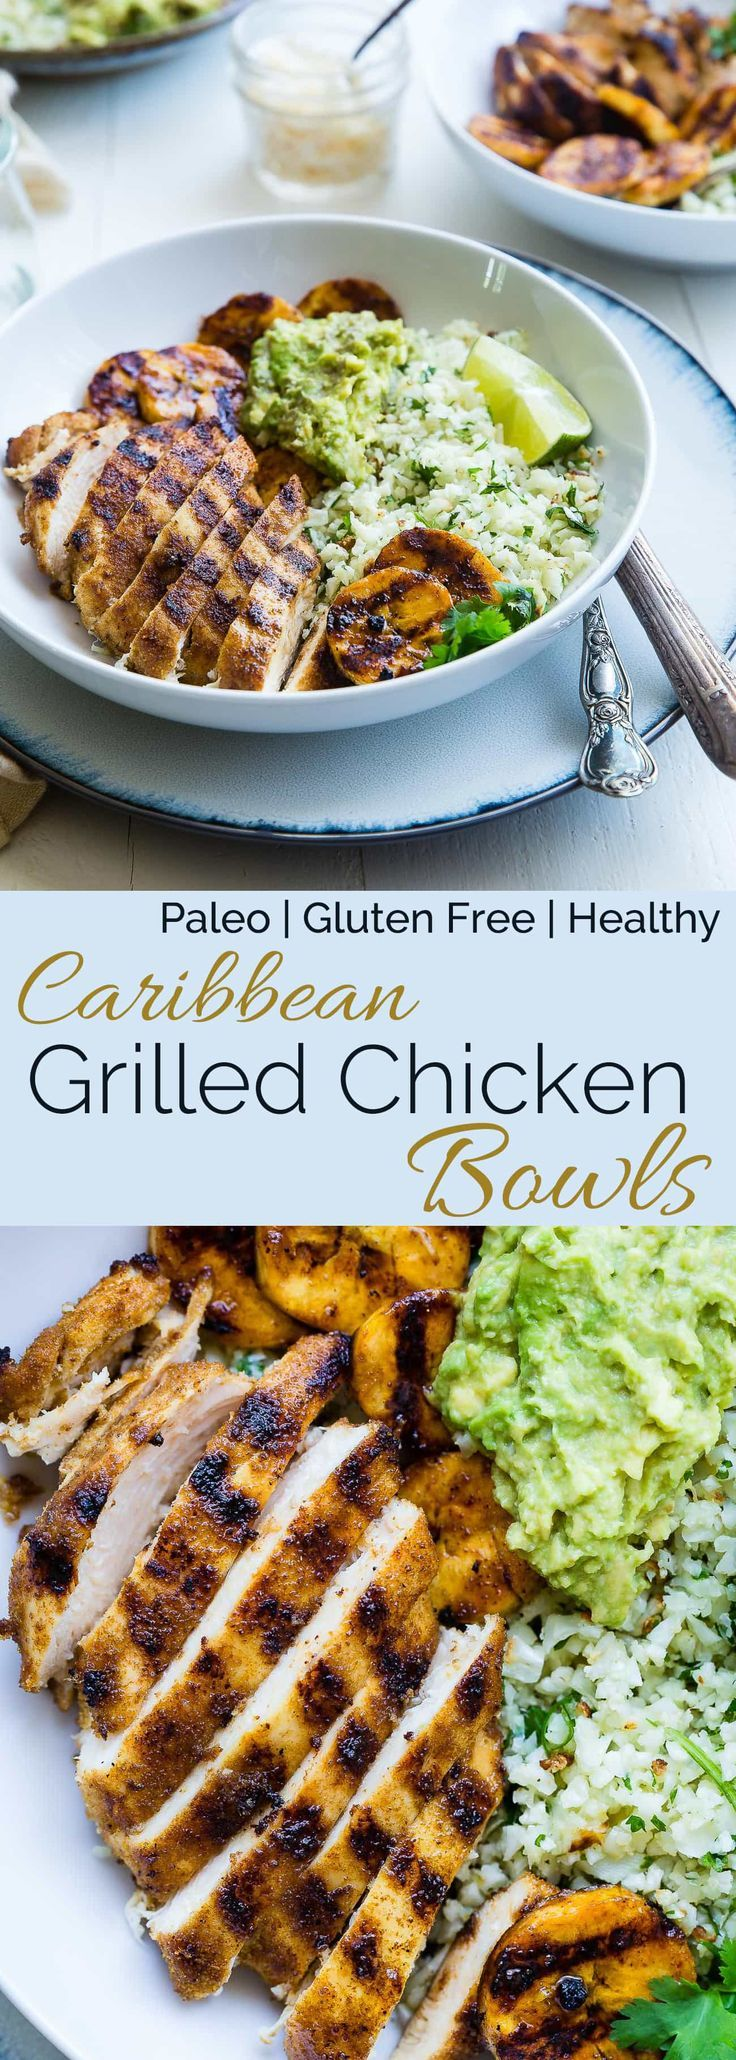 Photo of Caribbean Chicken Bowls with Grilled Plantains | Food Faith Fitness